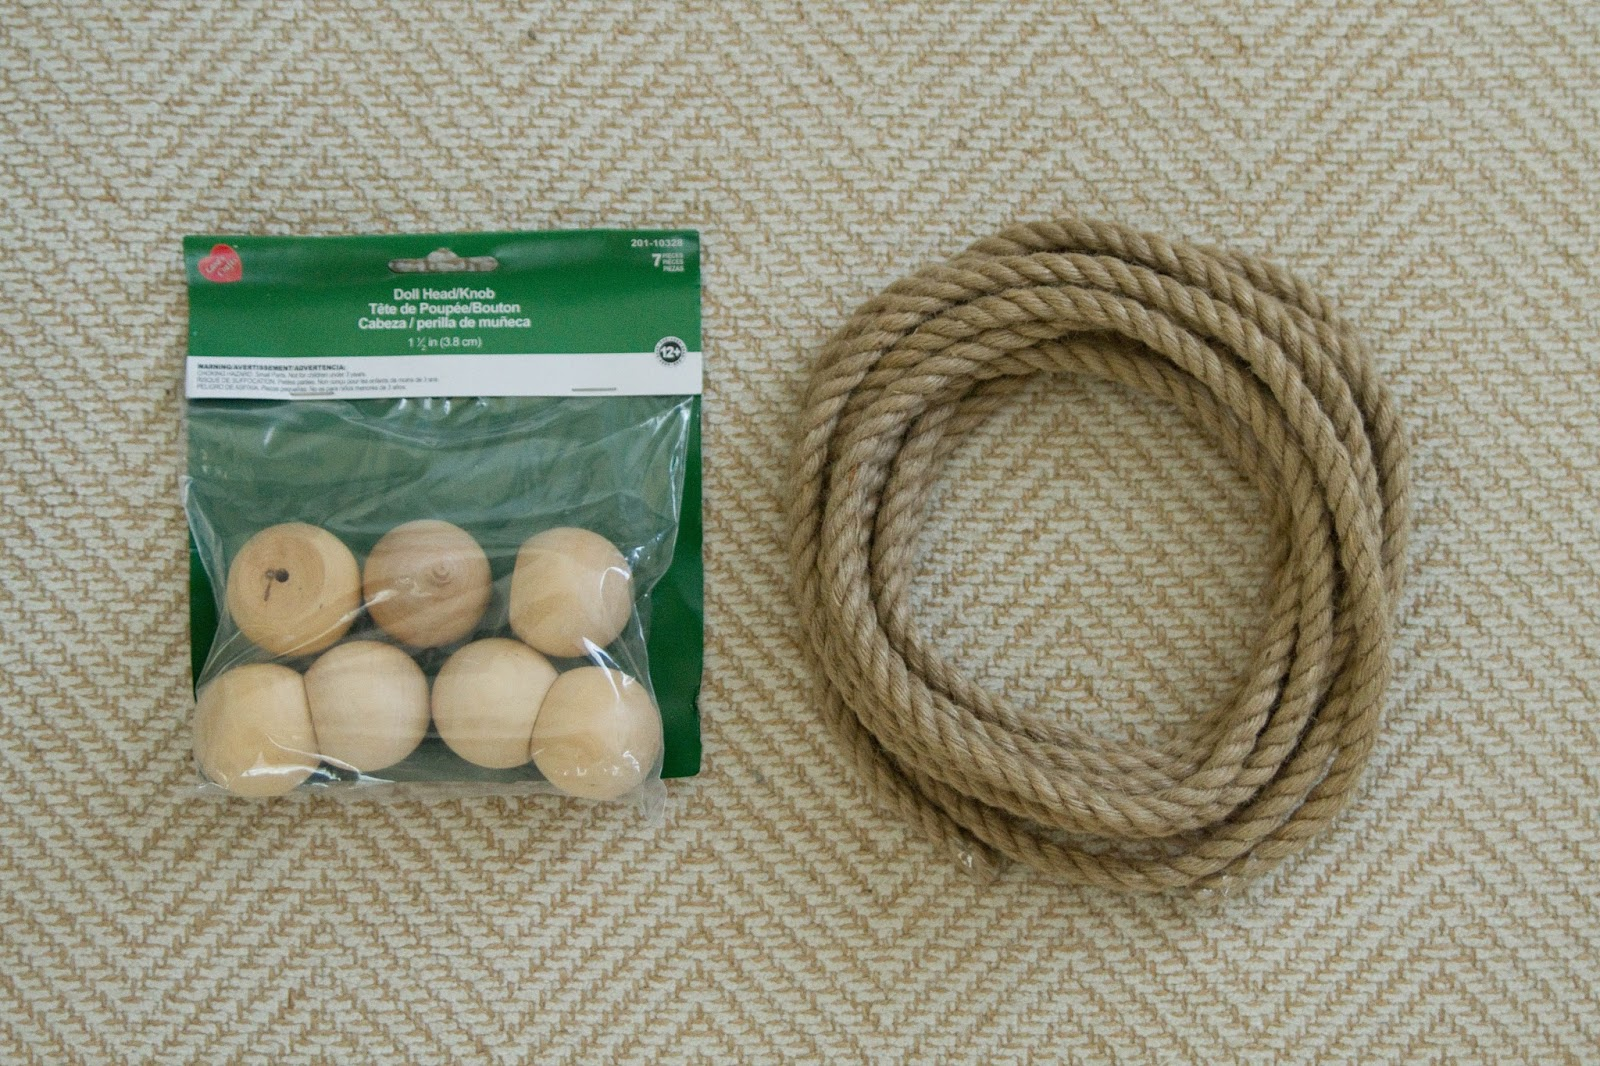 Wood finials for crafts - For Each Finial We Created A Monkey Fist Knot Out Of The Rope Slipping A Wooden Ball Into The Middle As We Were Making The Knot